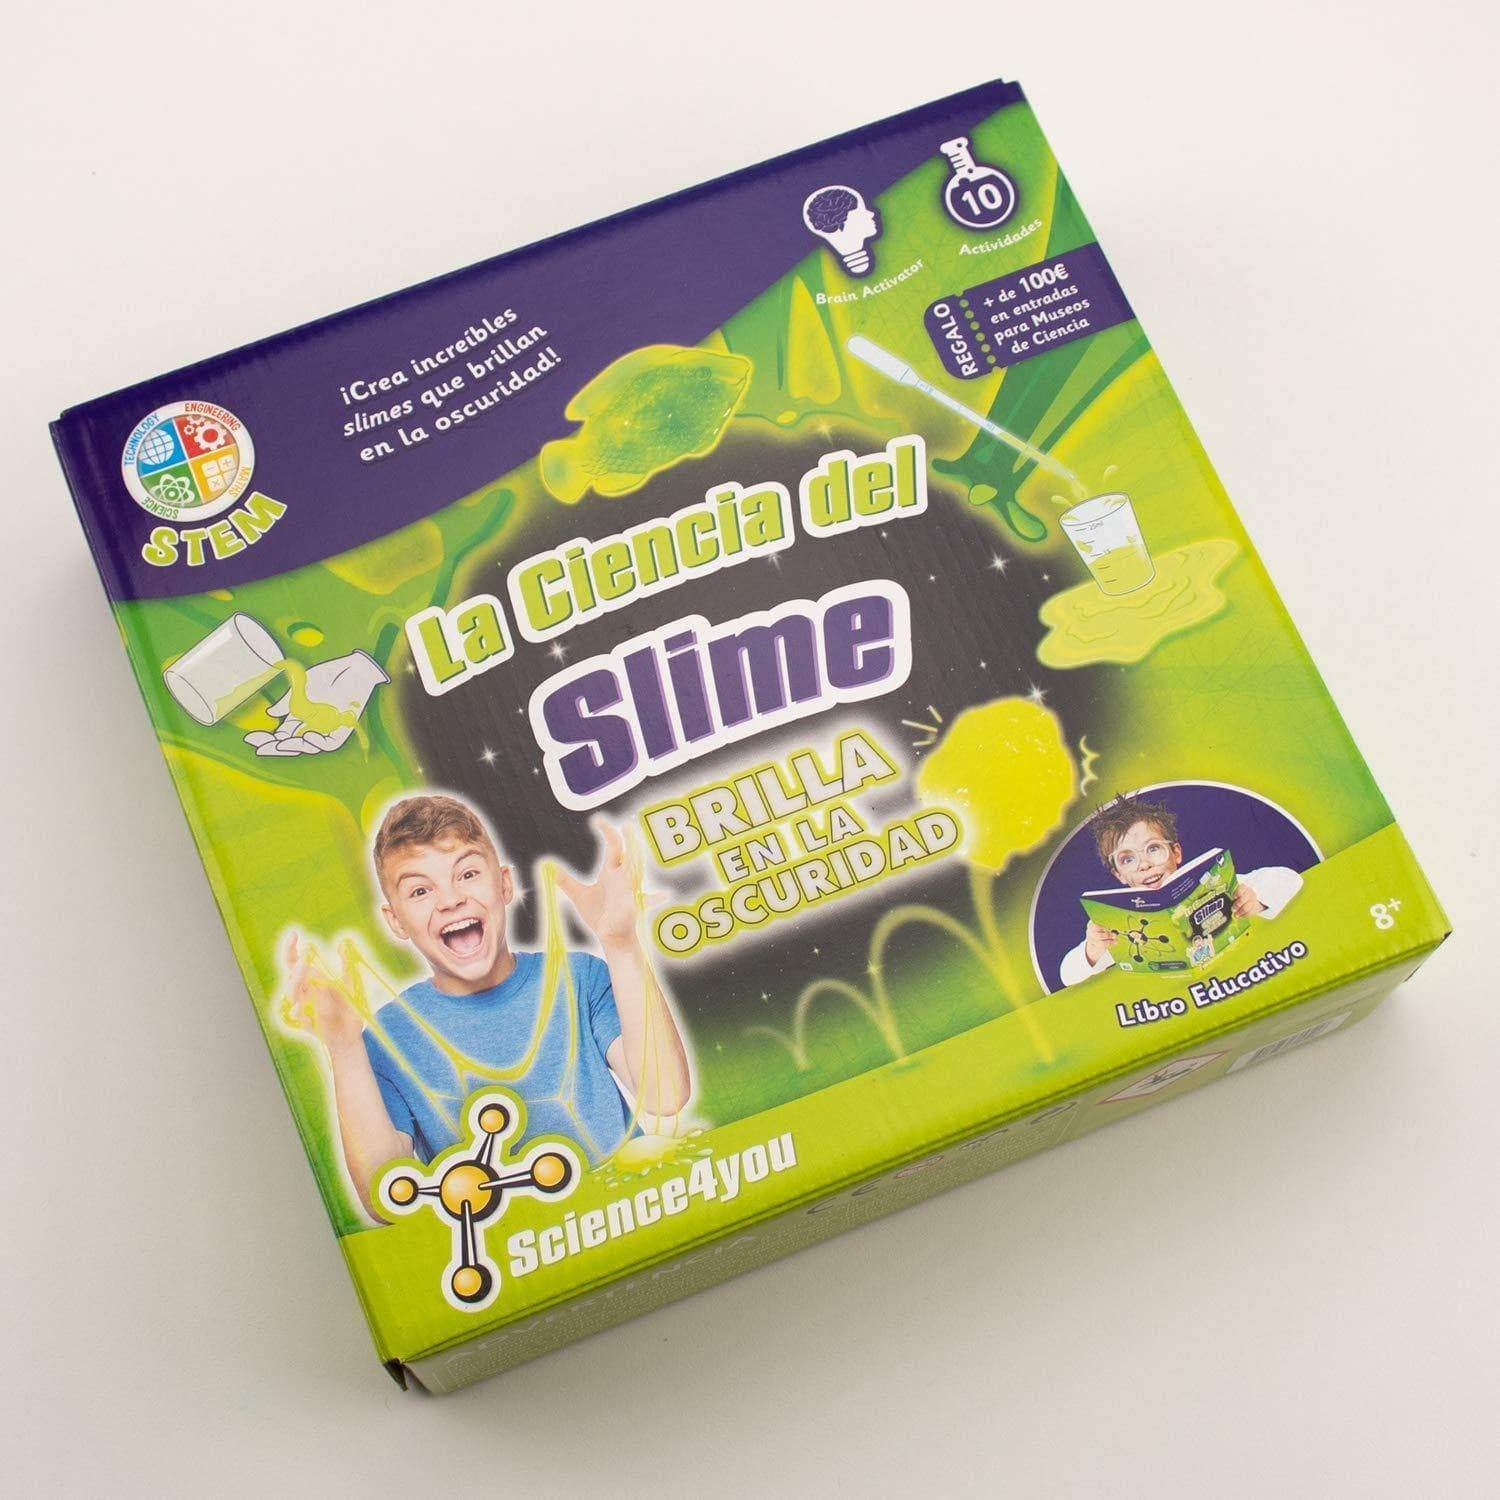 Amazon Science4you - La Ciencia del Slime - Brilla en la Oscuridad (609518)